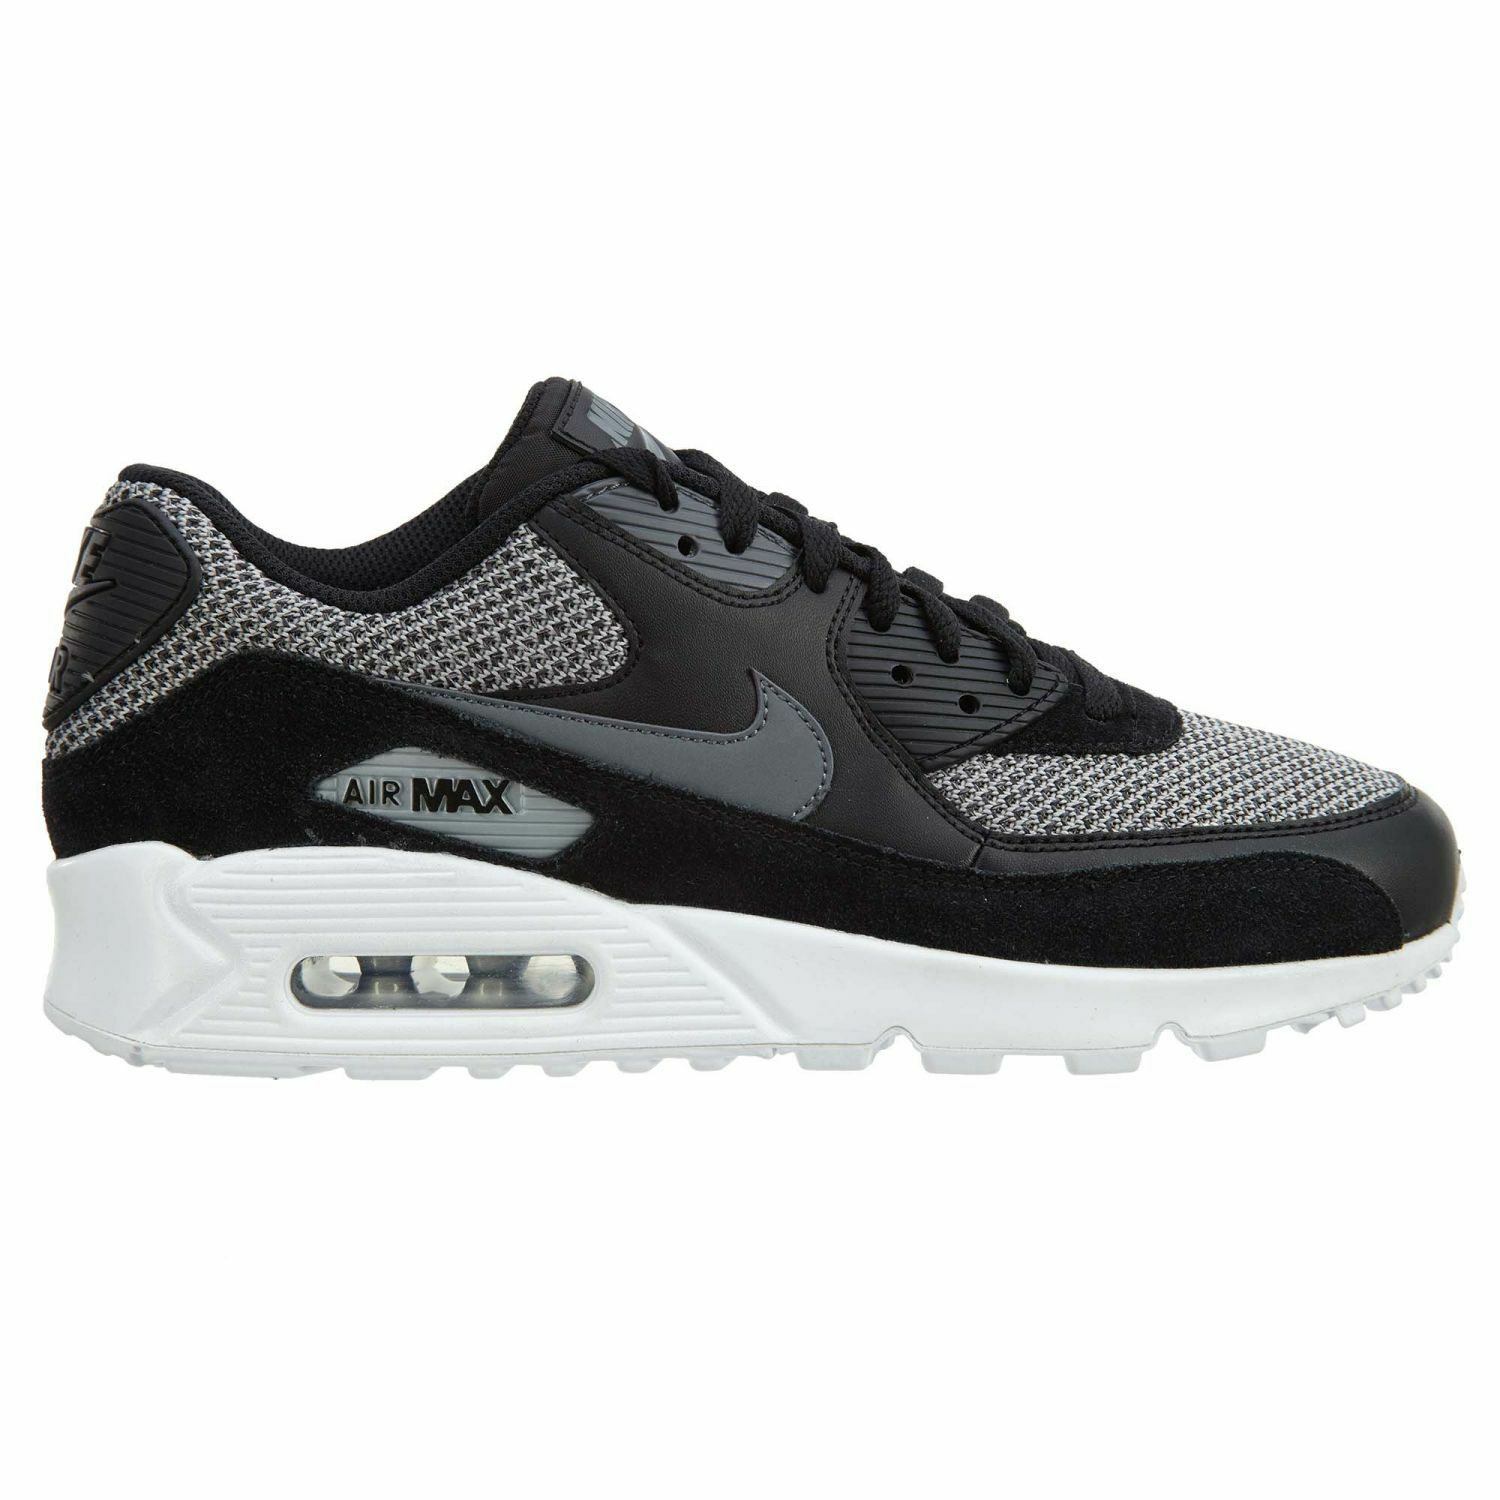 Nike Air Max 90 Essential Mens 537384-075 Black Dark Grey Running Shoes Size 8